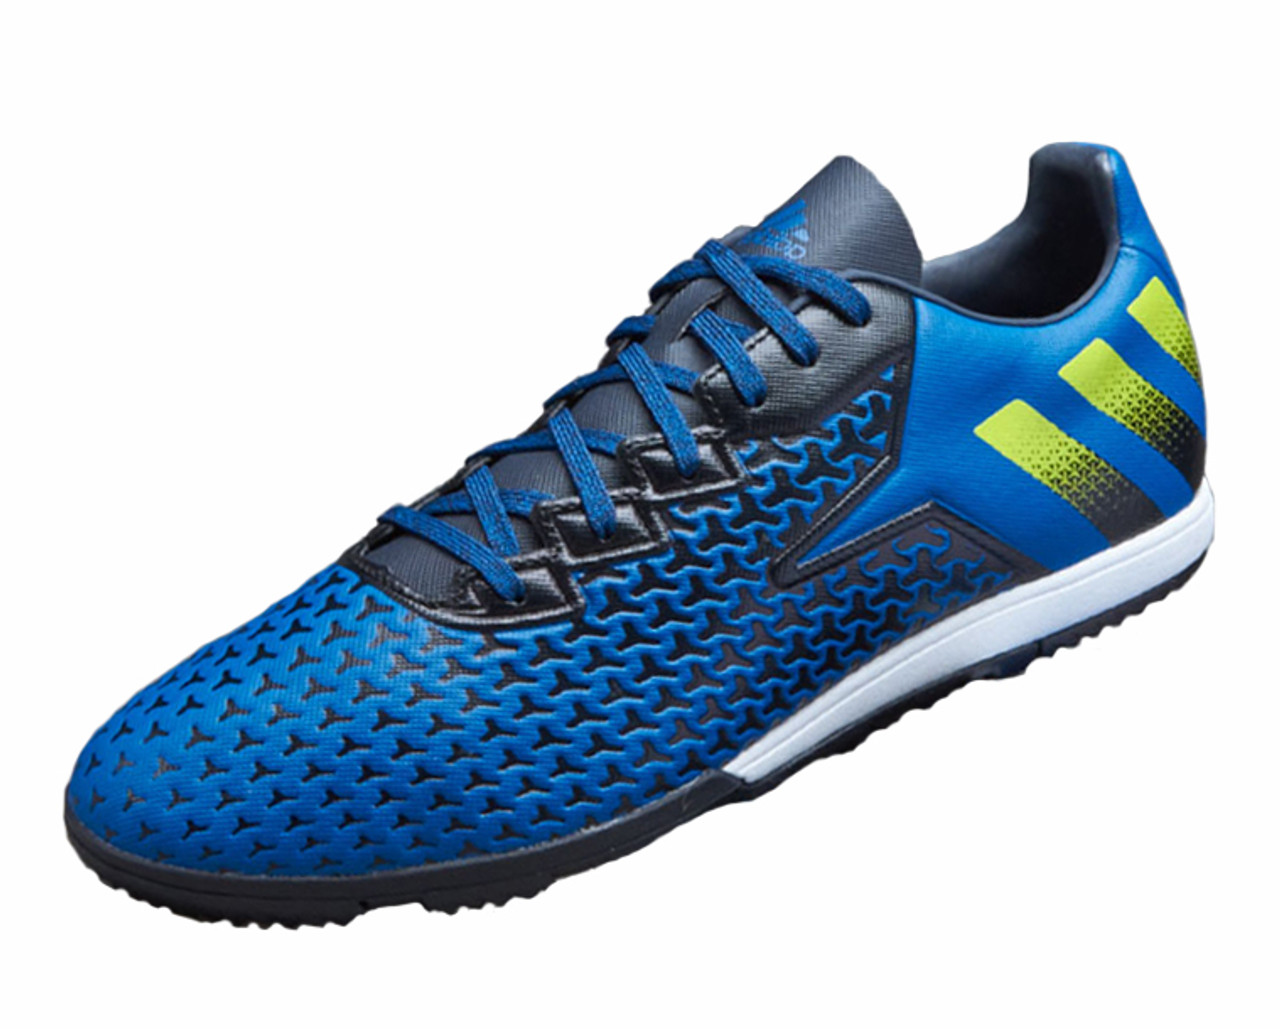 c4327737be5 Adidas Ace 16.2 CG - Shock Blue Night Navy SD (52419) - ohp soccer